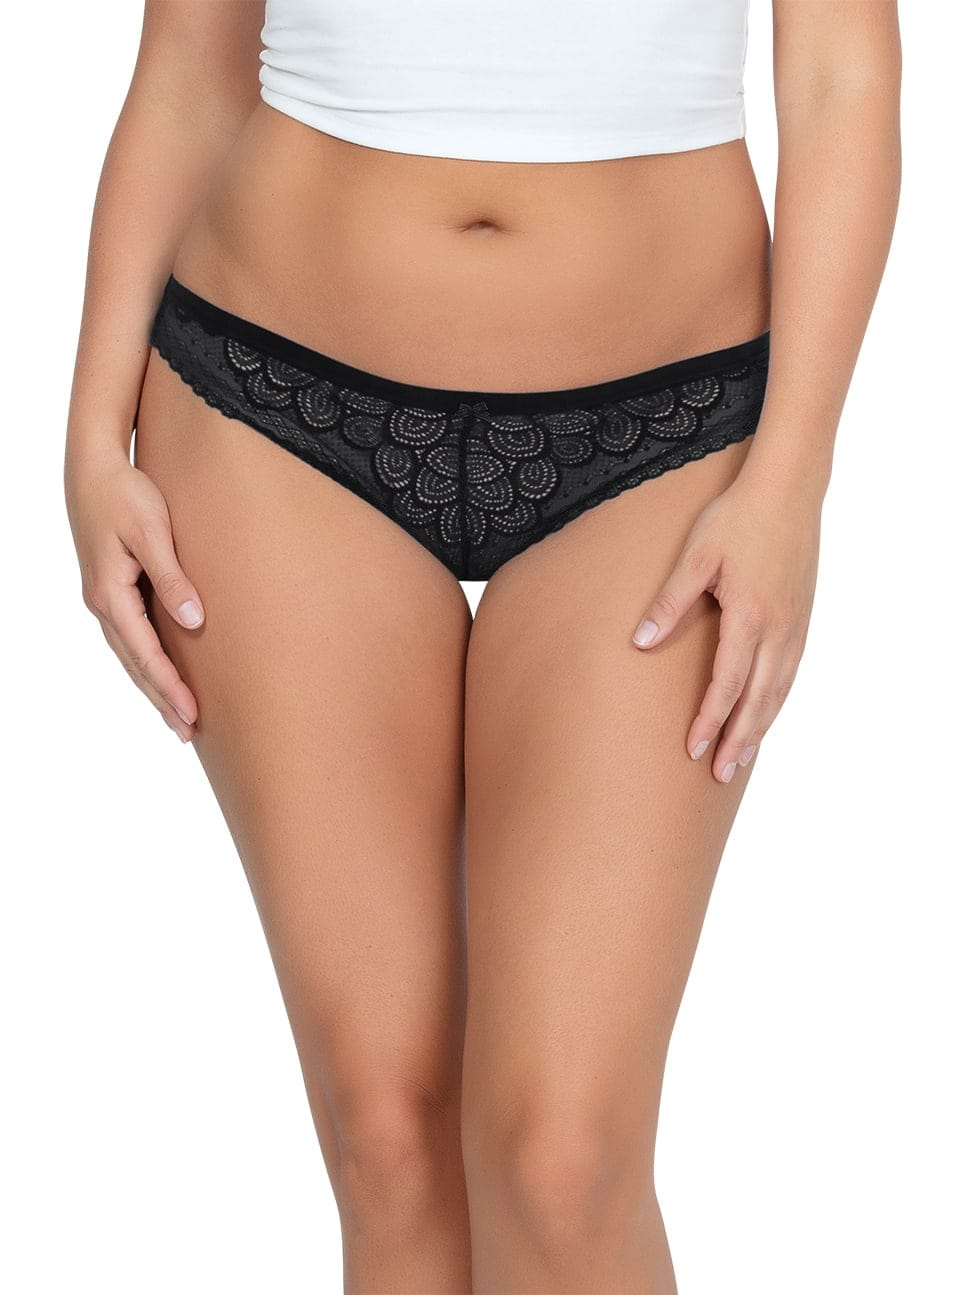 ParfaitPanty SoGlam ThongPP402 black front - Parfait Panty So Glam Thong - Black - PP402